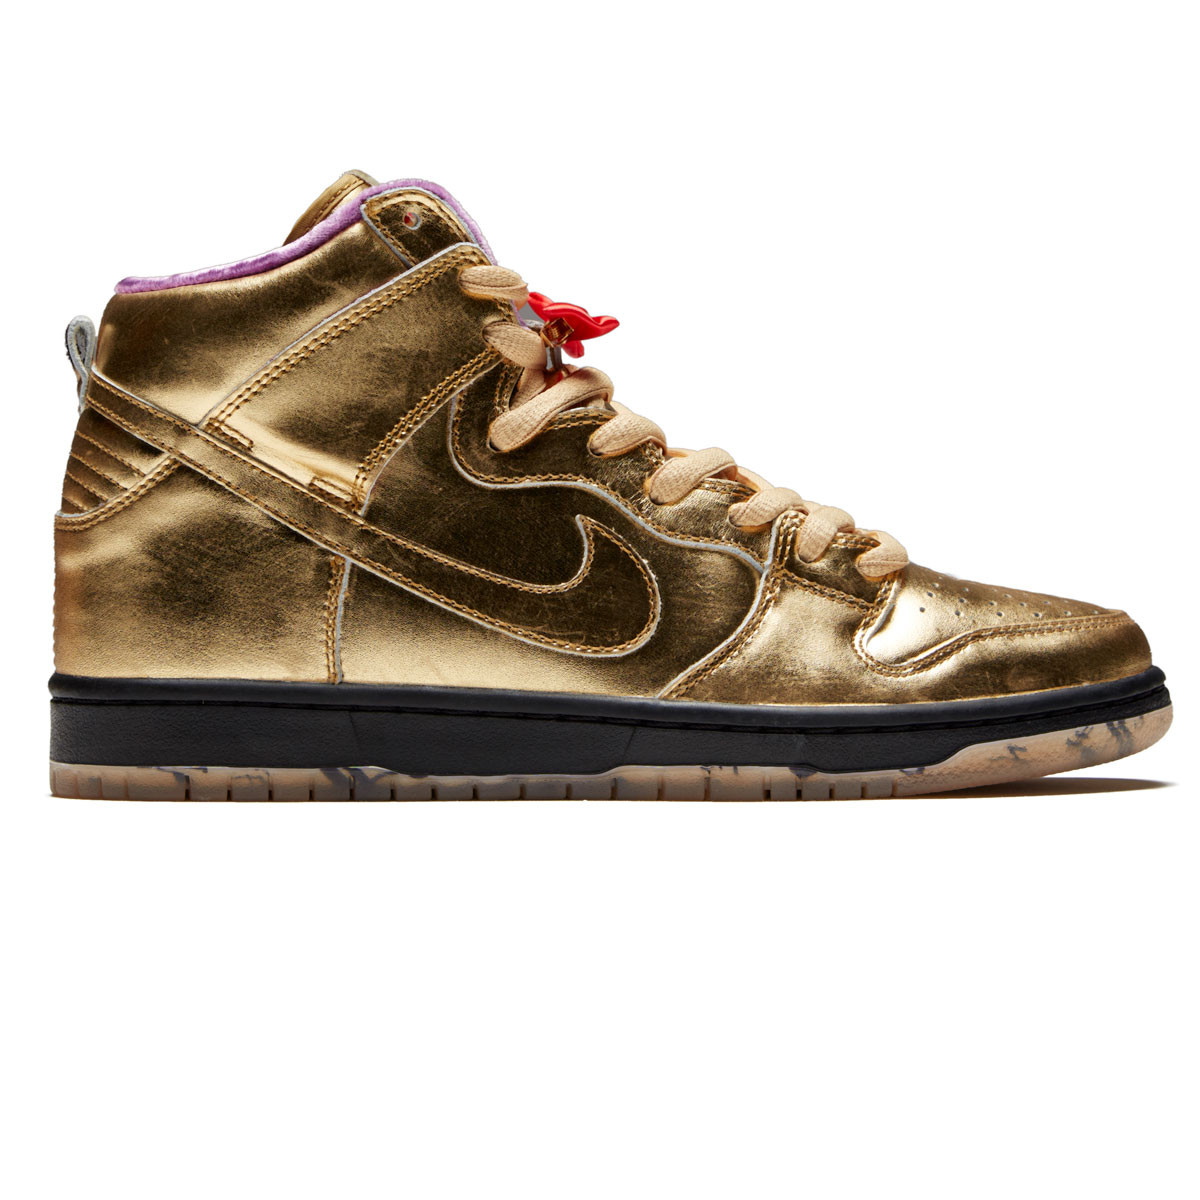 new style 1cc35 7ea24 Nike SB x Humidity Dunk High QS Shoes